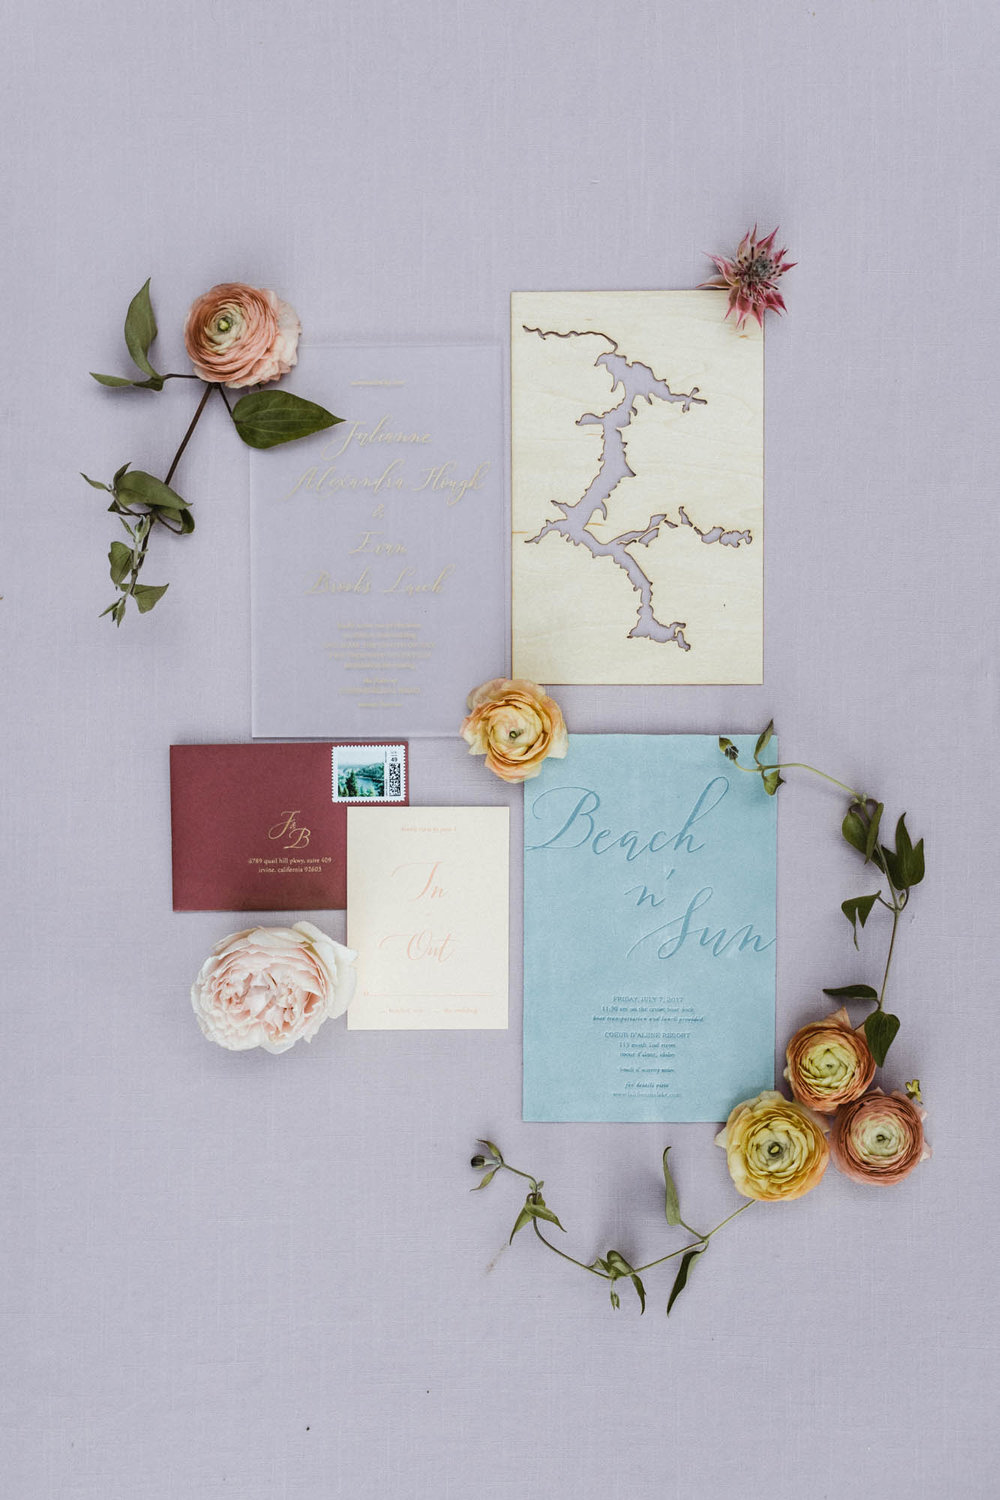 Julianne Hough and Brooks Laich Wedding - Wild Bloom Floral - Sarah Falugo Photography - Simply Troy Event Design 4.jpeg